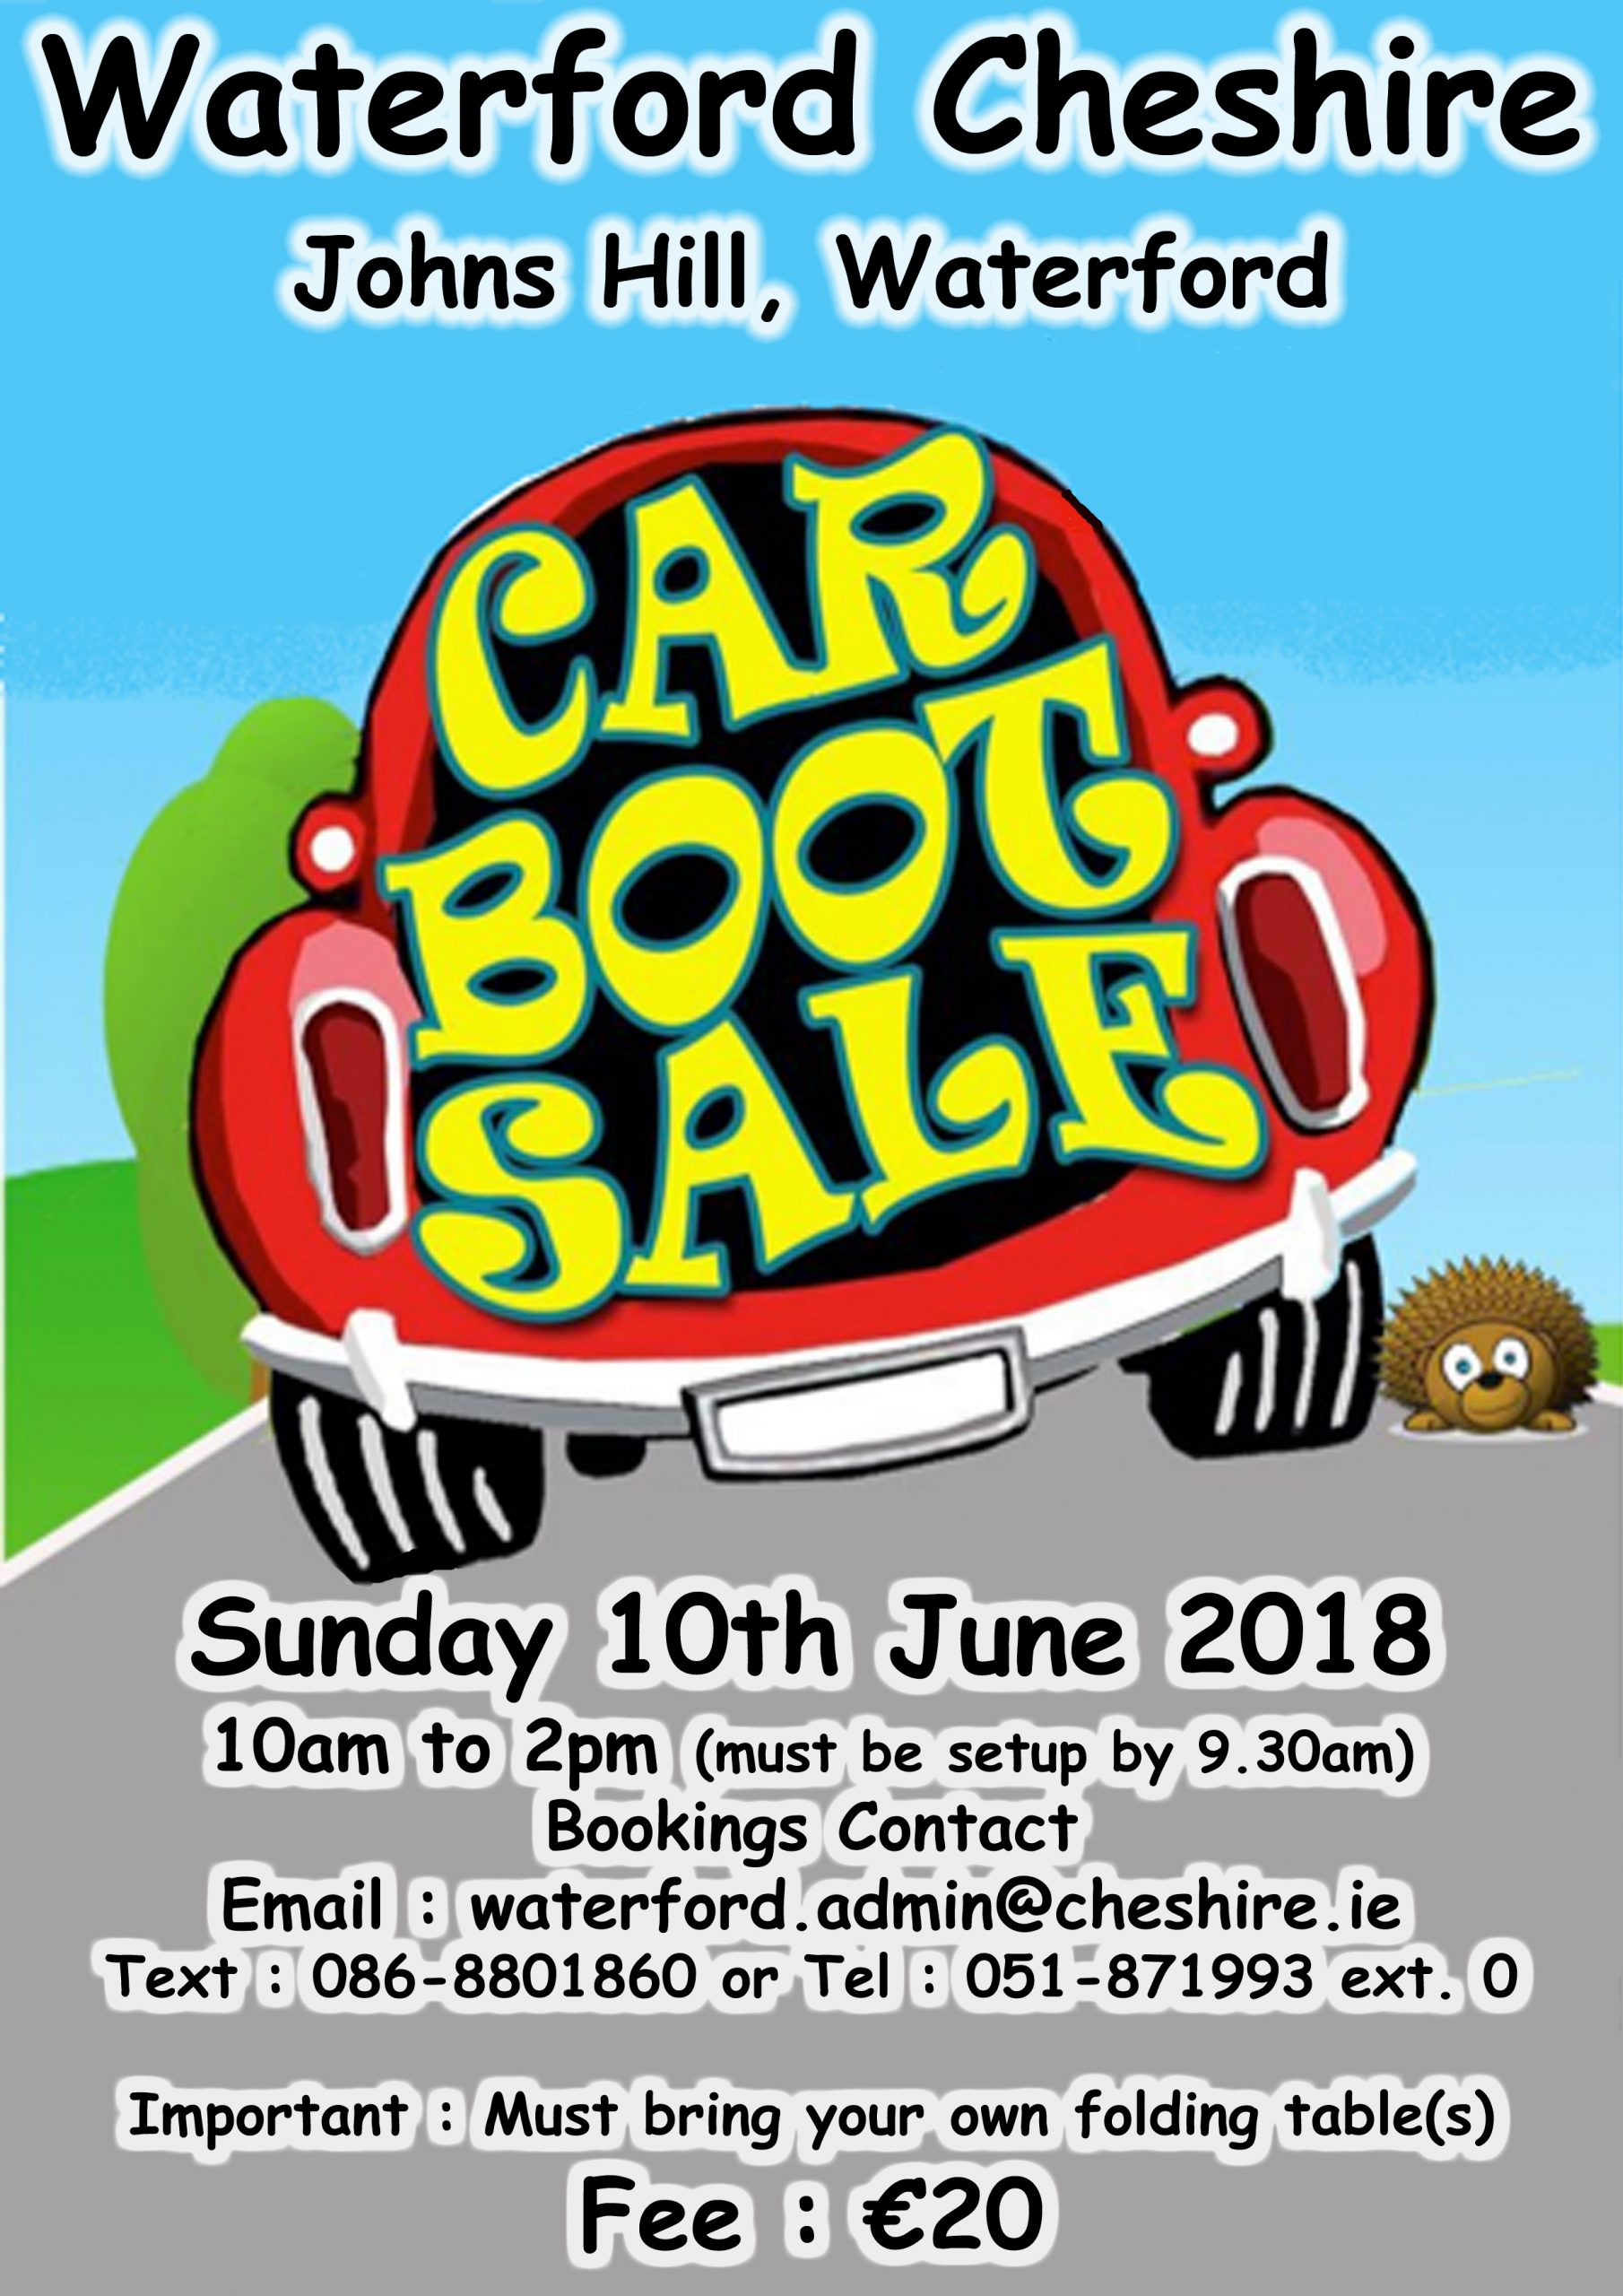 Cheshire House Car Boot Sale Sunday June 10th